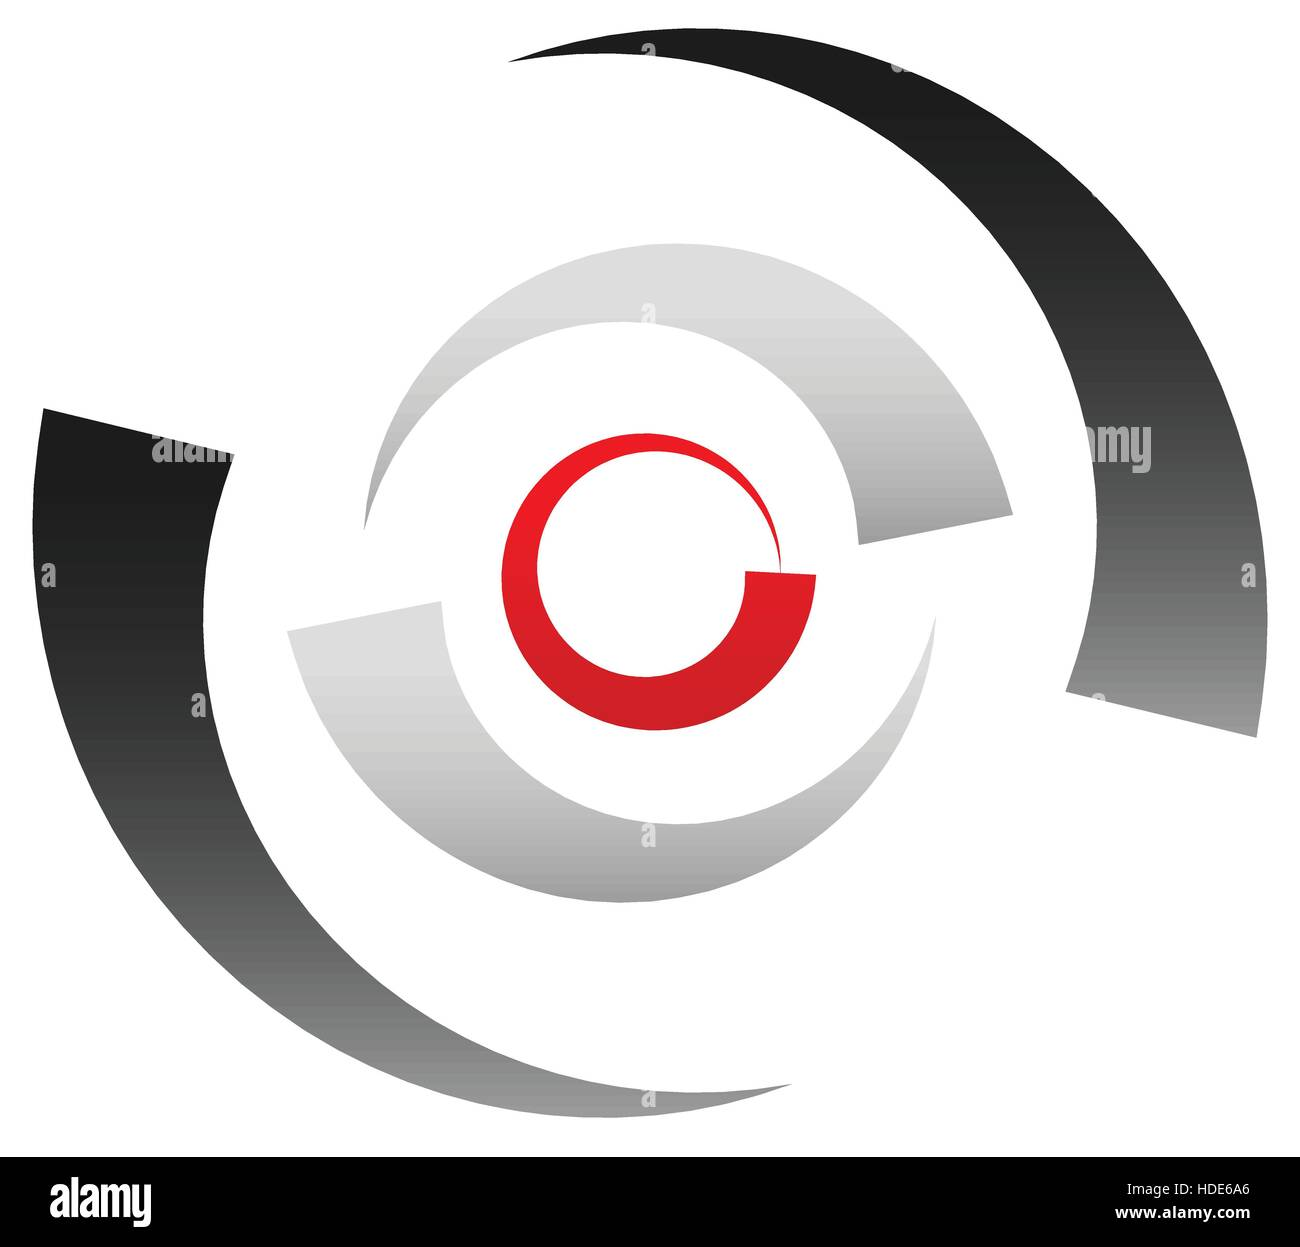 Crosshair icon target symbol pinpoint bullseye sign concentric crosshair icon target symbol pinpoint bullseye sign concentric segmented circles with red dot at center buycottarizona Image collections